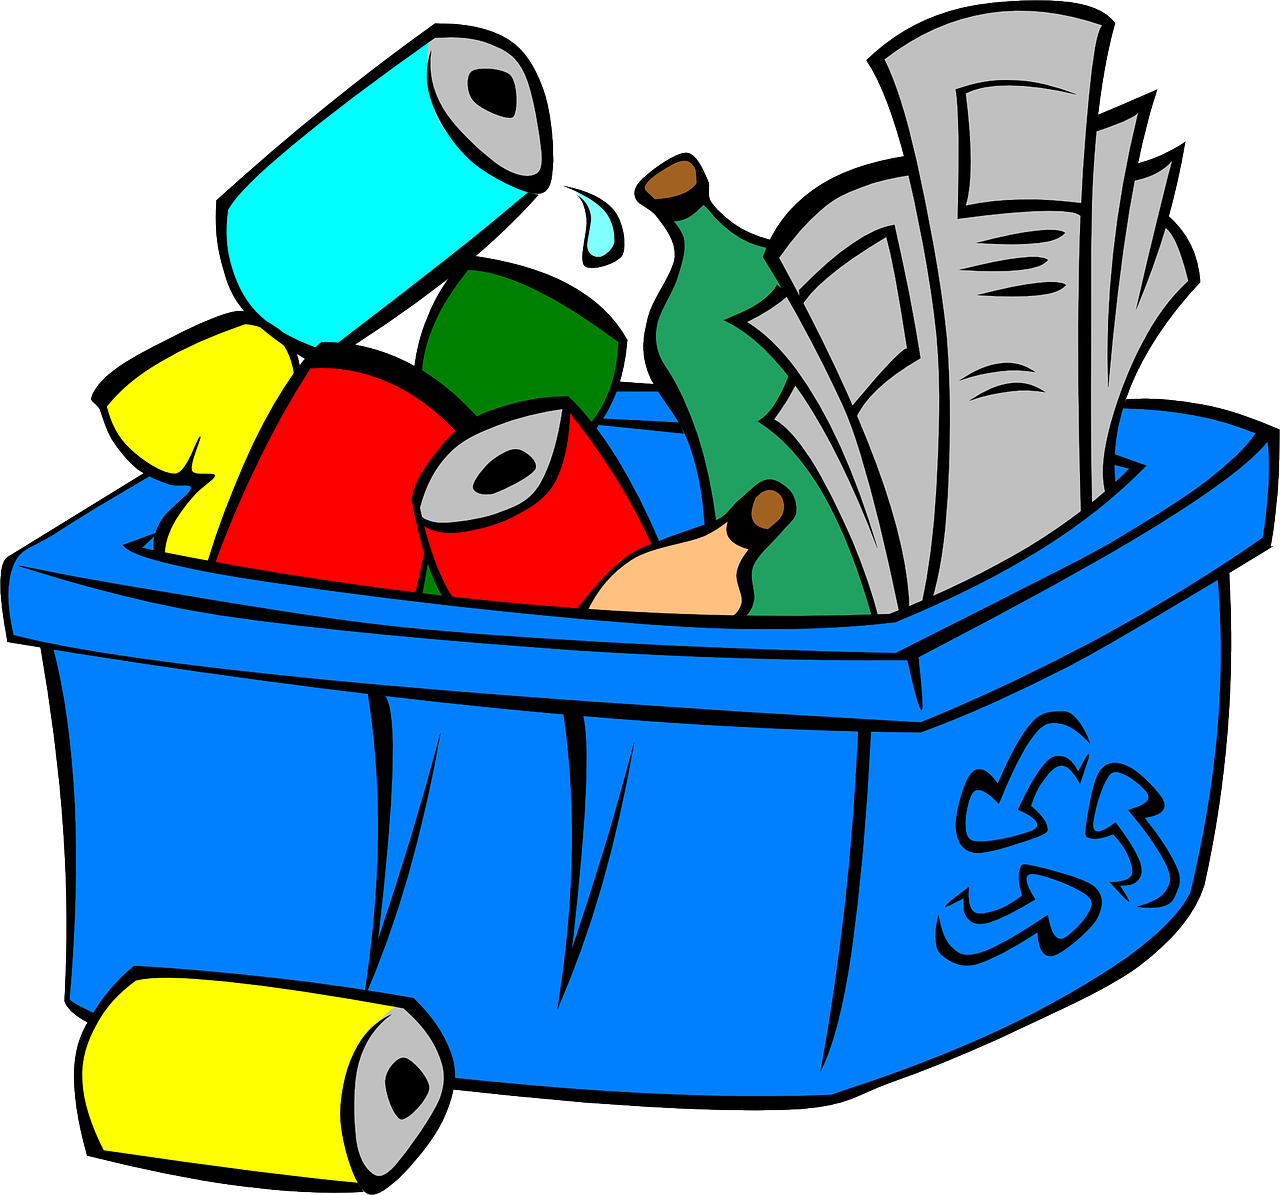 Recycling Science Materials Bins Garbage Free Transparent Image HD PNG Image